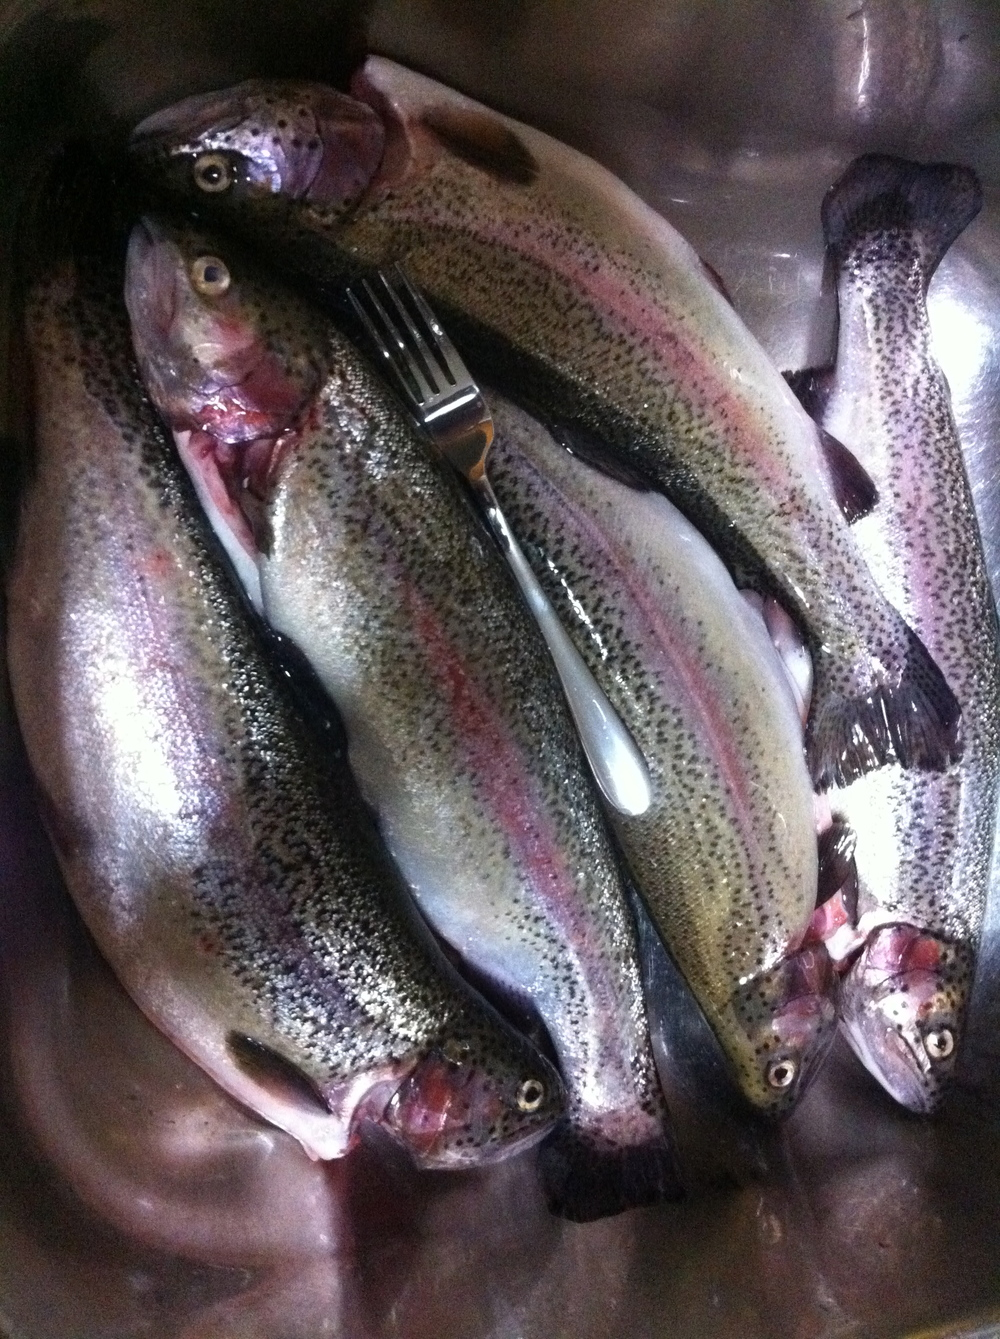 Well conditioned wild trout all cought on the fly just a short drive from the estate here from a private pond.